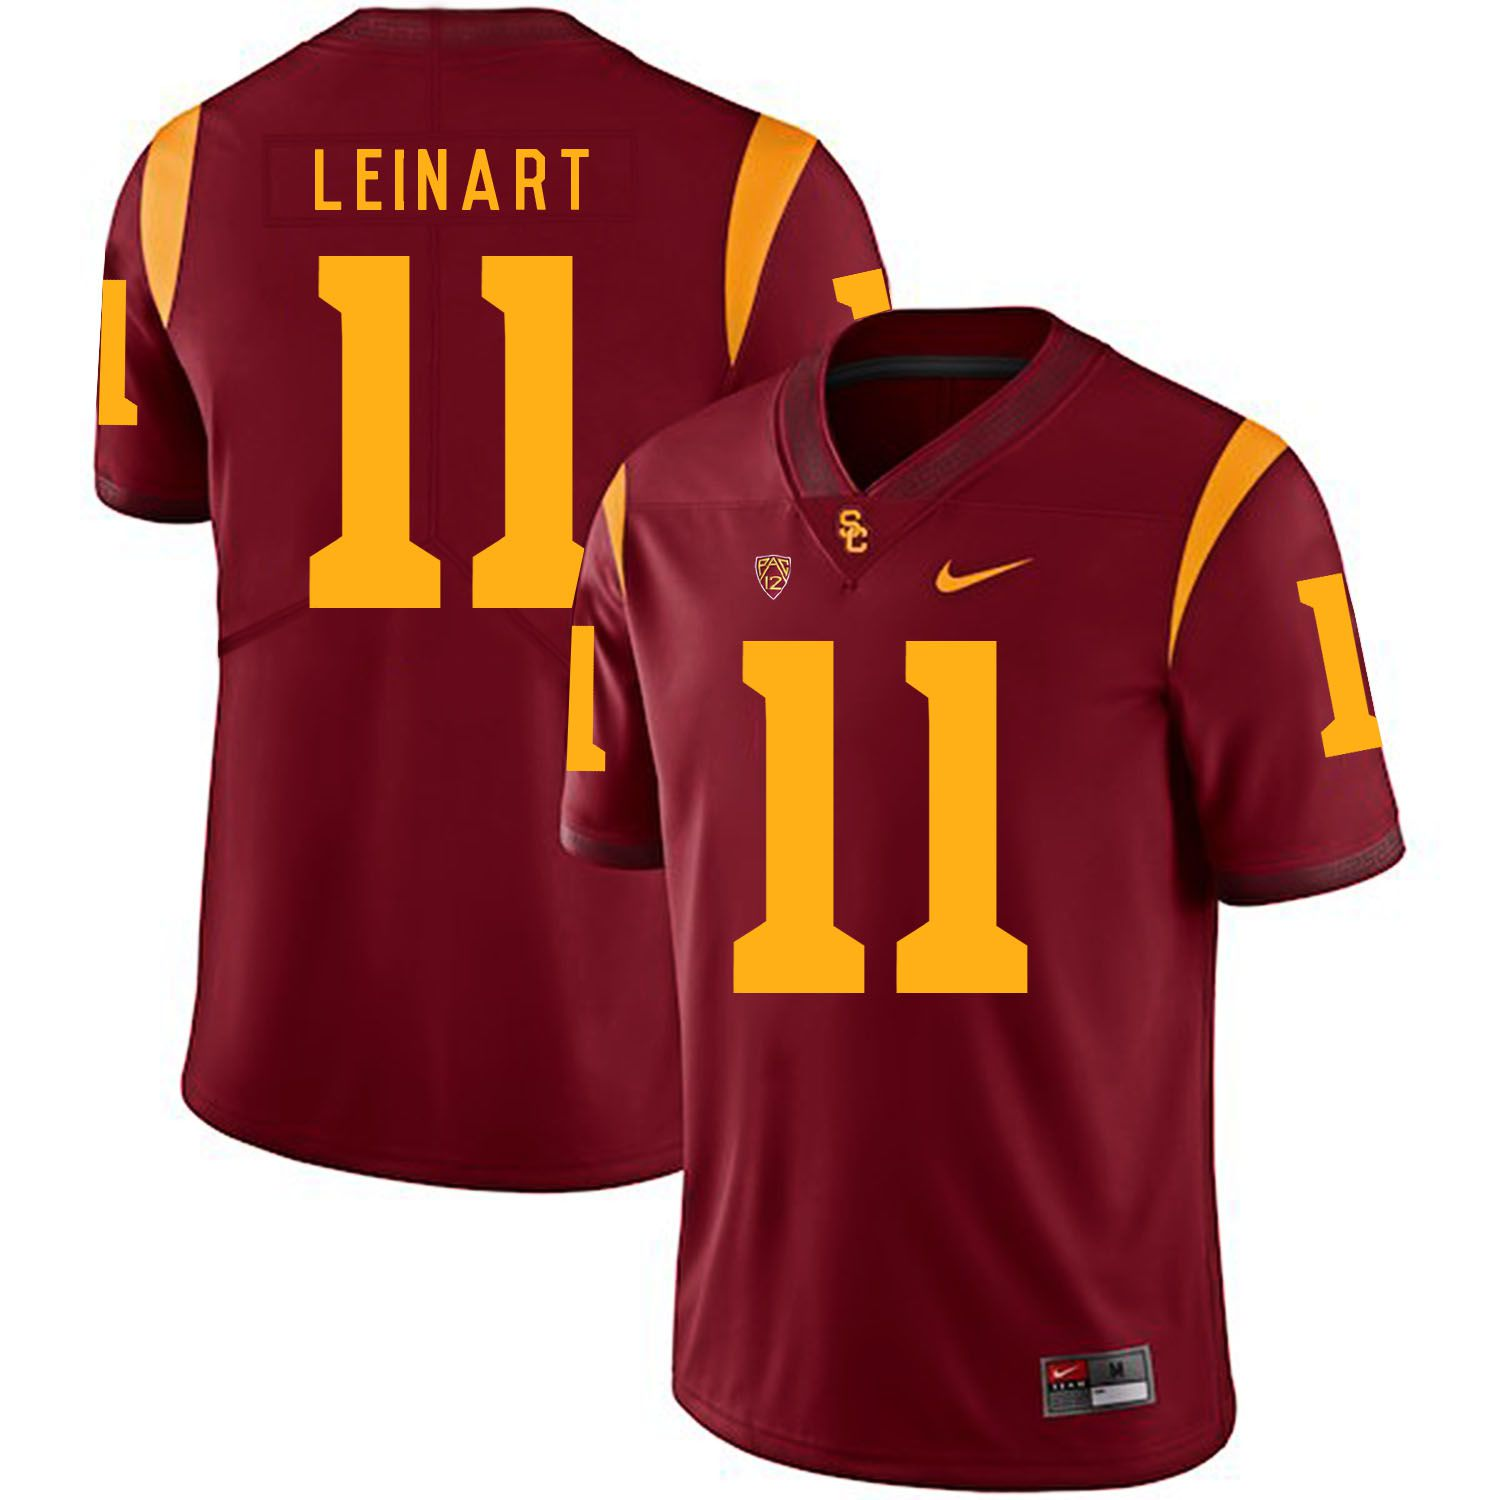 Men USC Trojans 11 Leinart Red Customized NCAA Jerseys